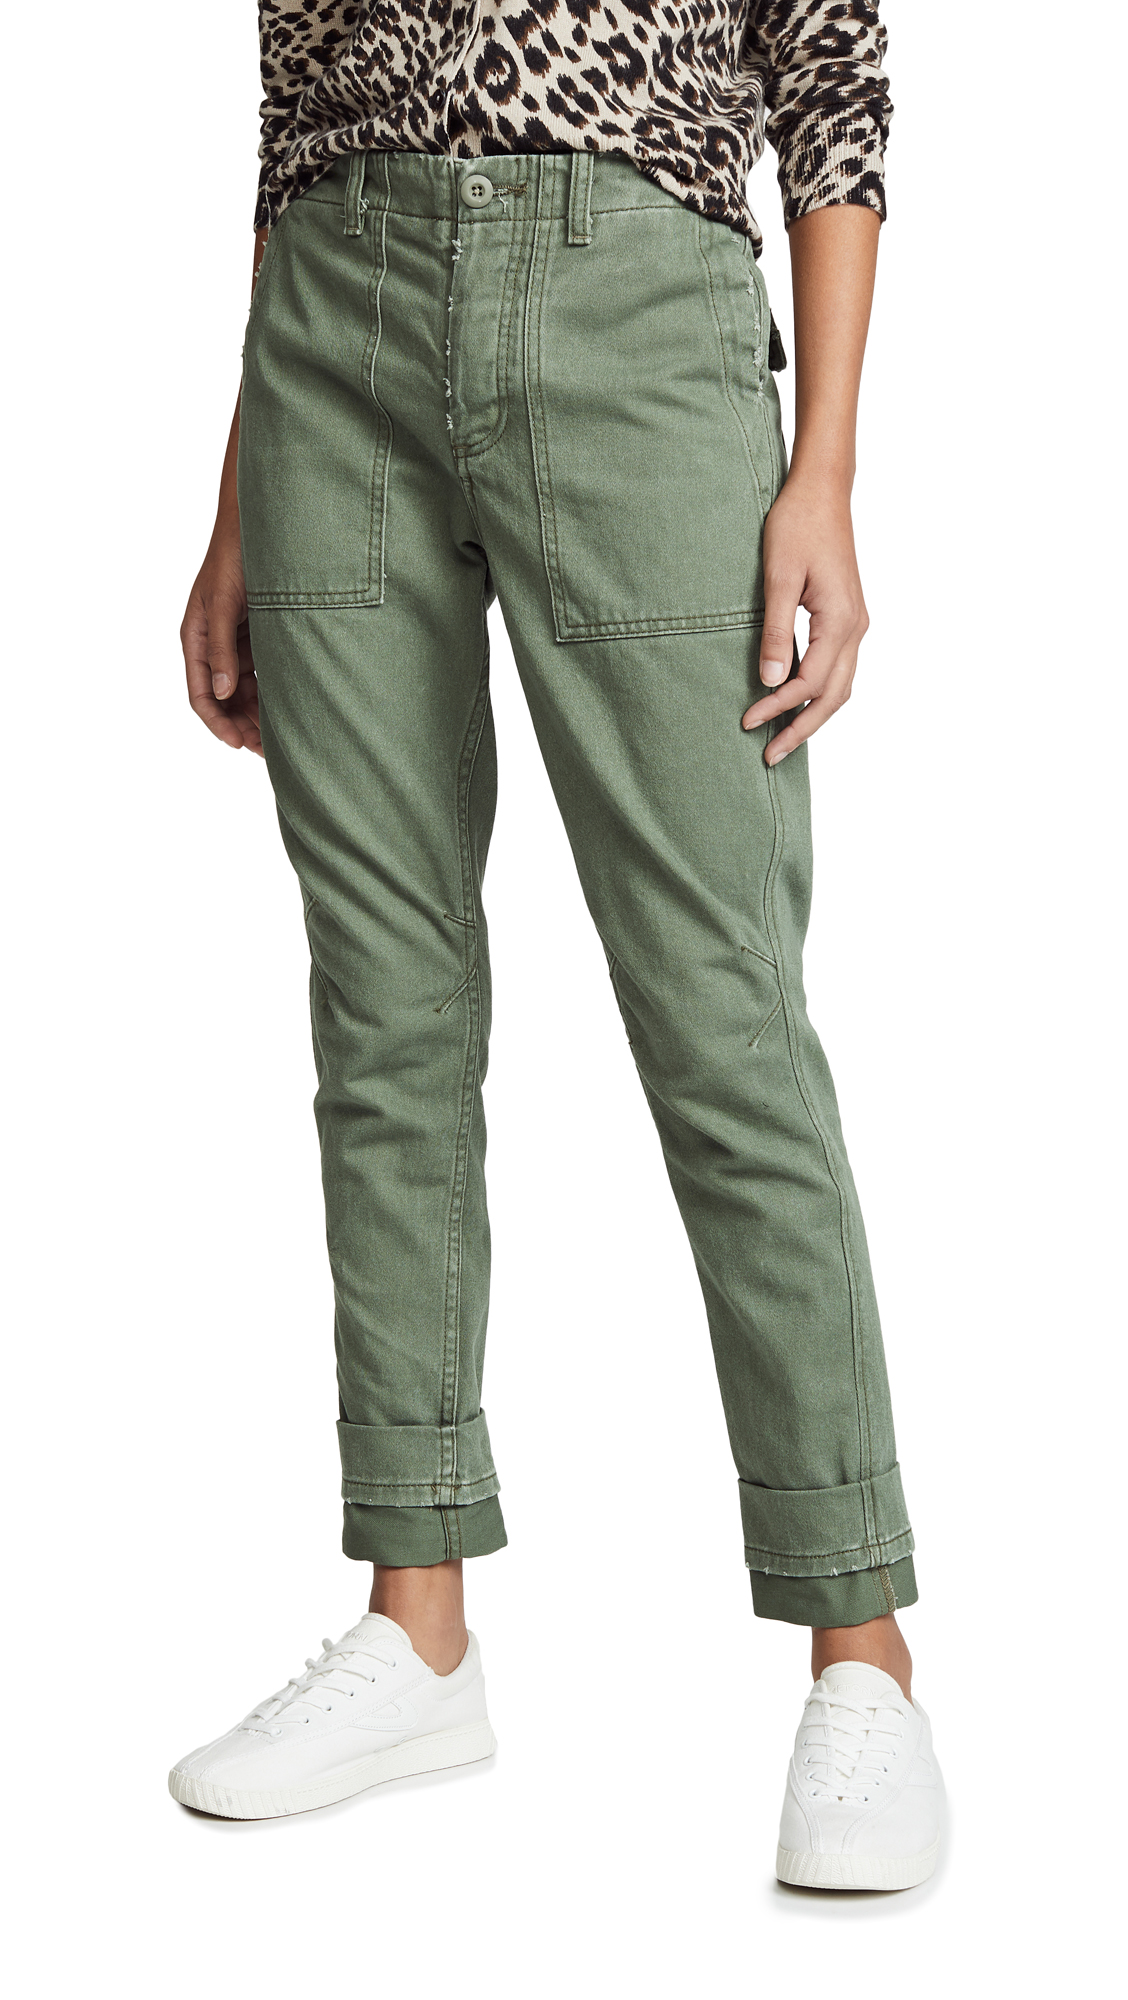 LE SUPERBE Casbah Cuffed Cropped Cargo Pants in Army